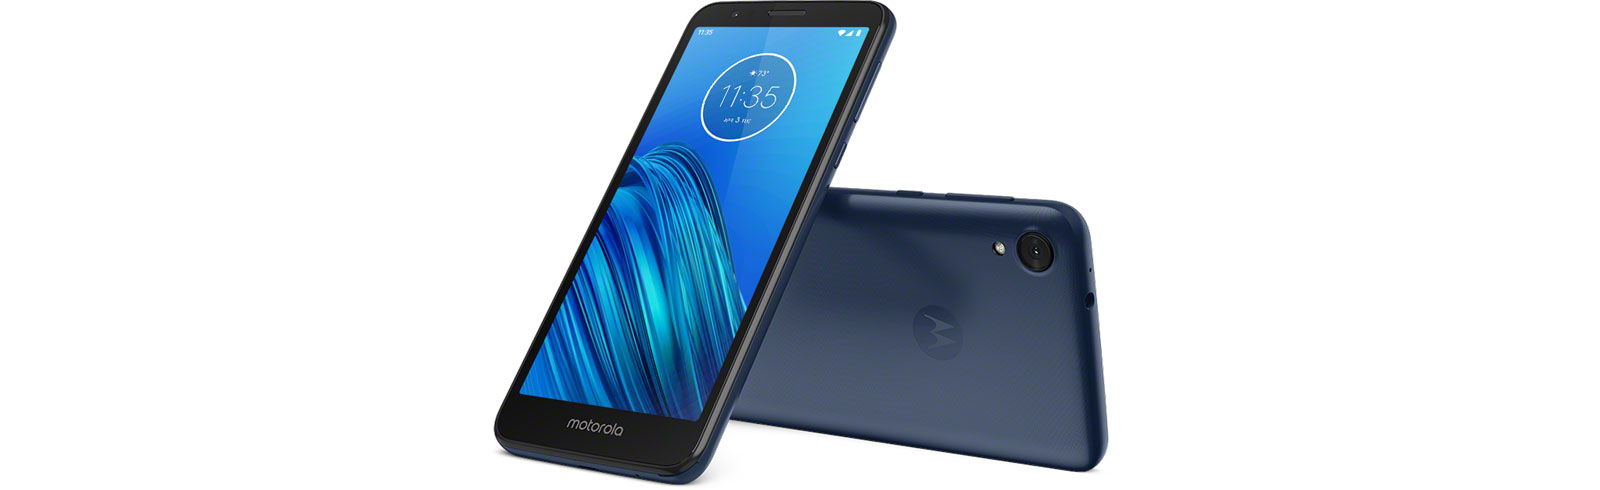 Moto E6 goes official in North America, costs $149.99